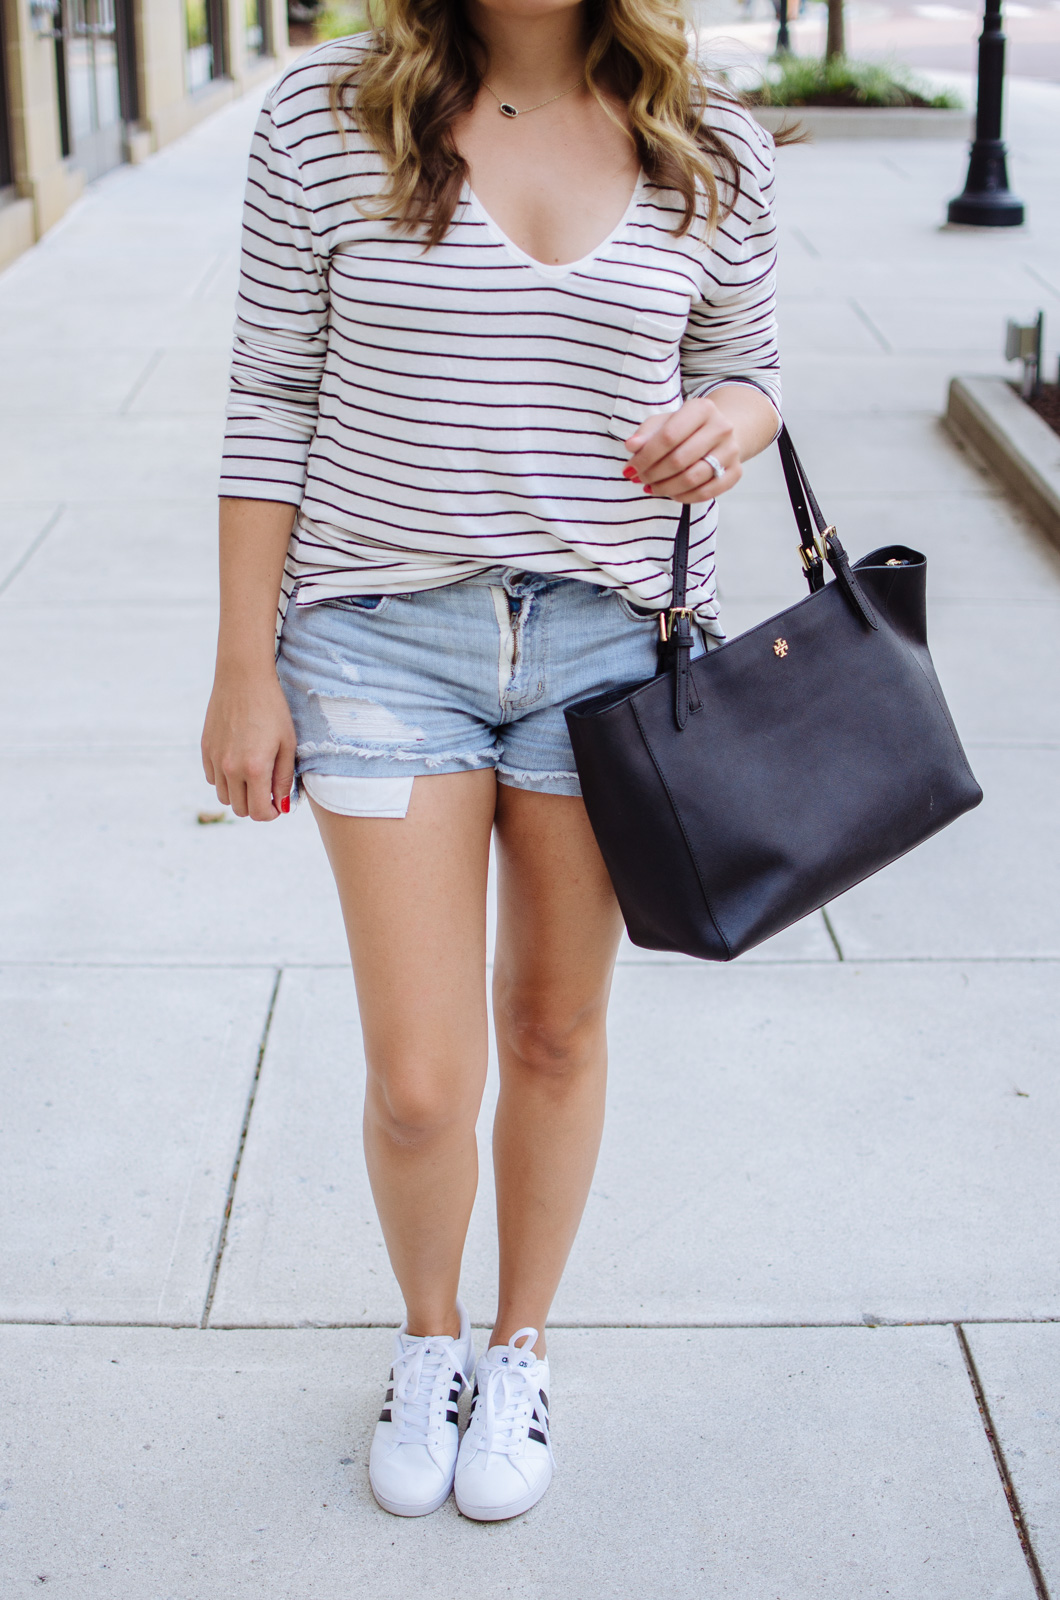 mom style - stripe tee and adidas sneakers | For more mother daughter outfits, head to bylaurenm.com!